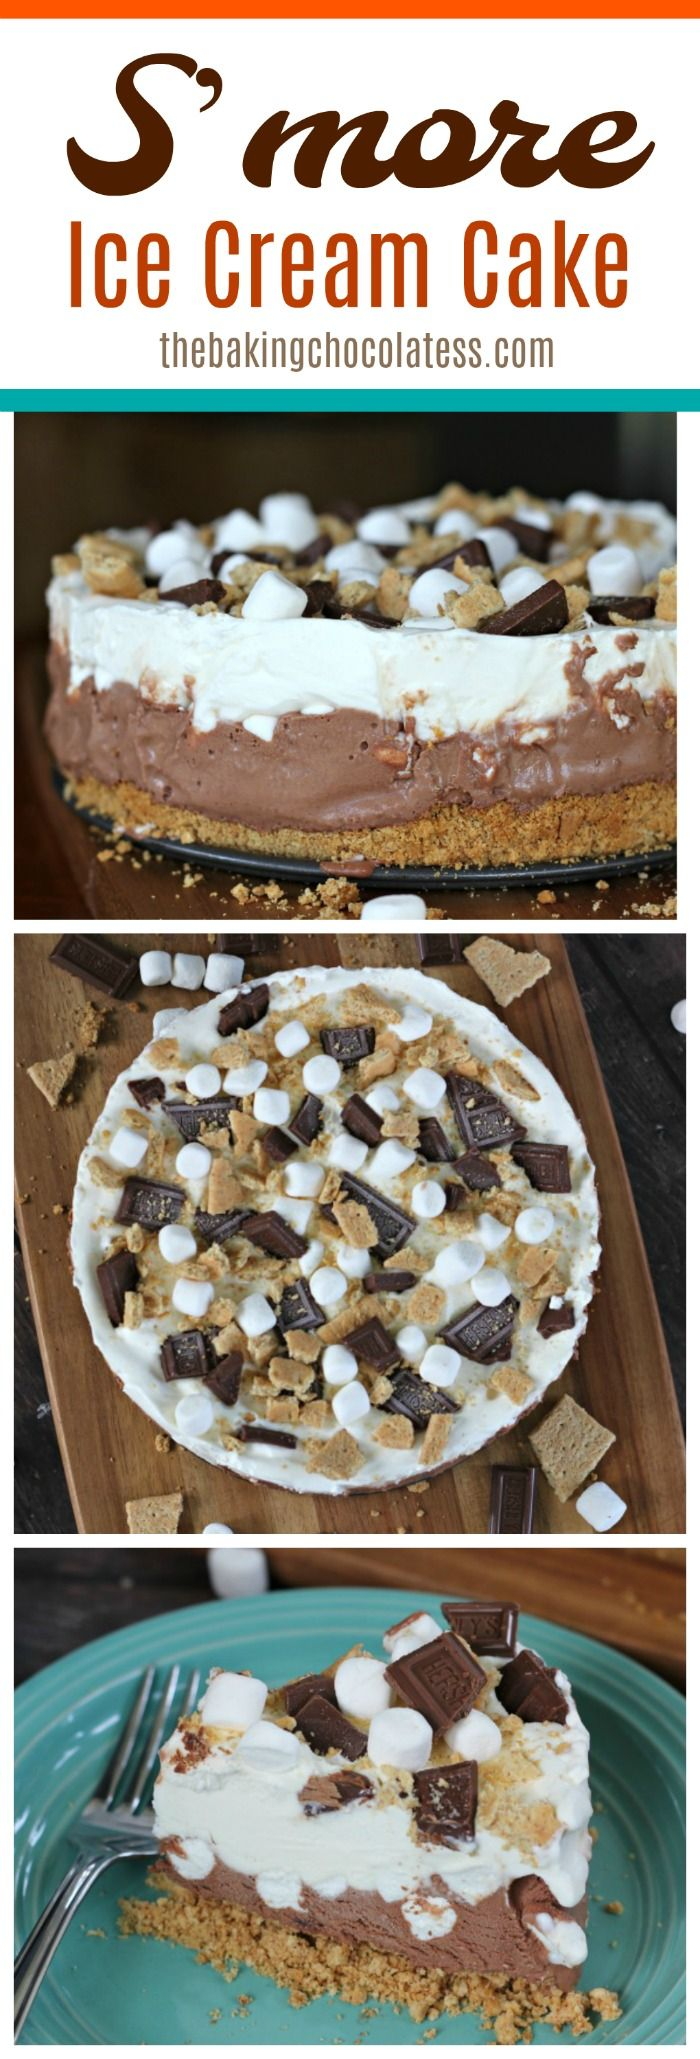 Have S'more fun devouring delicious bitefuls of this wonderful S'more Ice Cream Cake packed full of marshmallows, chocolate ice cream, whipped cream, Hershey's Bar Bits and graham crackers, which makes it one of the best summer treats of Summer! via @https://www.pinterest.com/BaknChocolaTess/